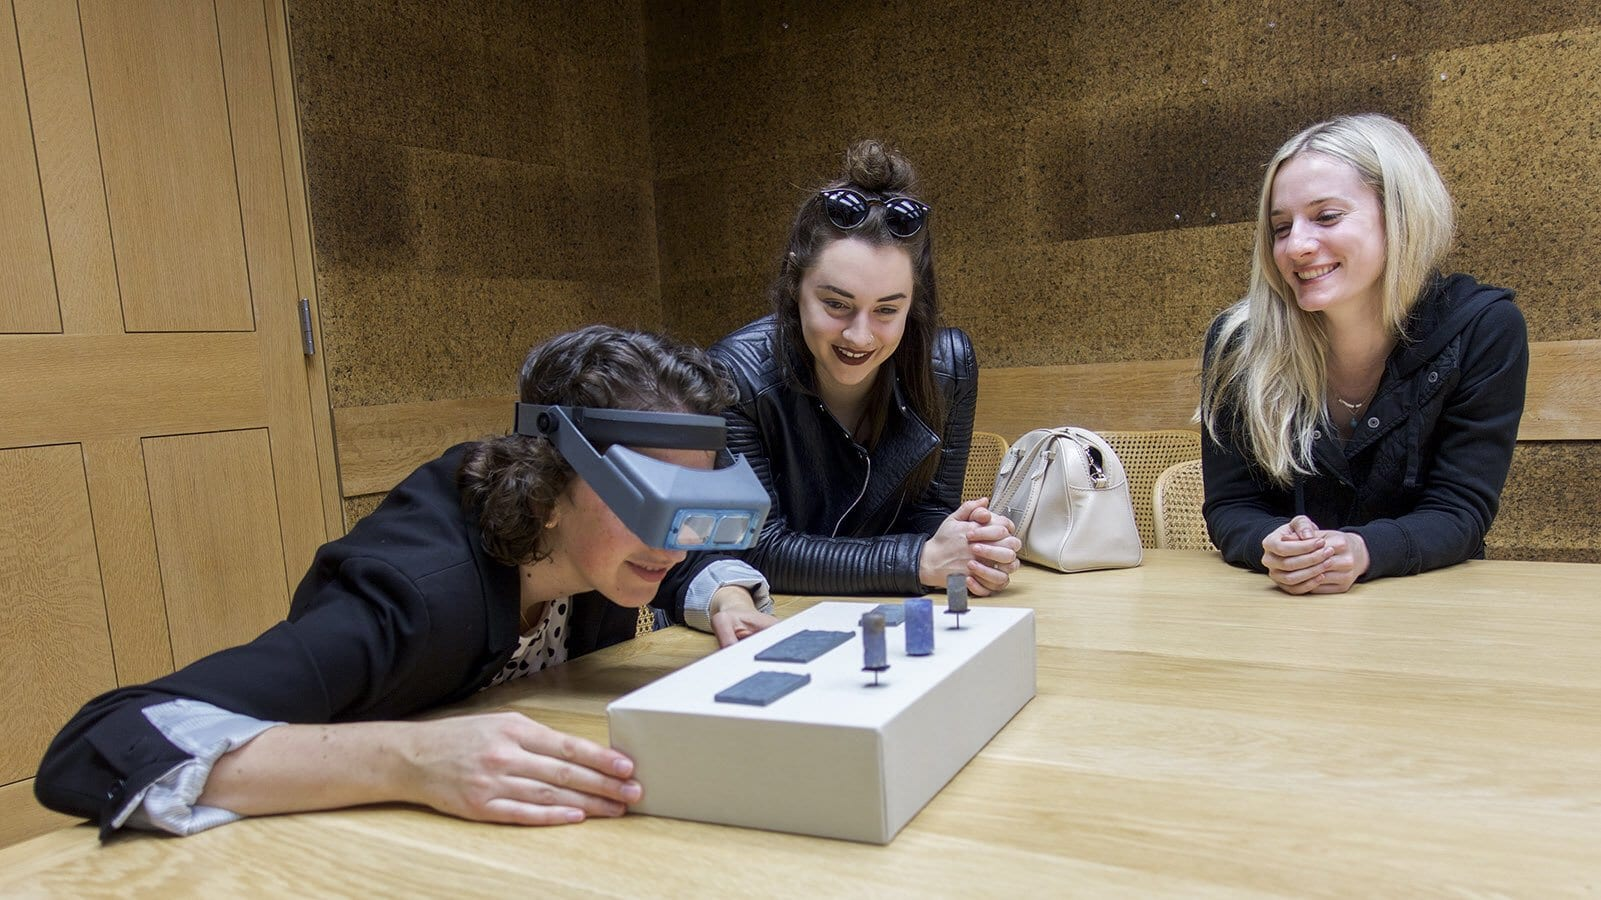 "<a href=""https://www.smu.edu/Meadows/AreasOfStudy/ArtHistory"">Art History's Dr. Langin-Hooper</a> and her Grad Seminar take behind-the-scenes look at ancient cylinder seals in vault of the Kimbell Art Museum in Fort Worth."